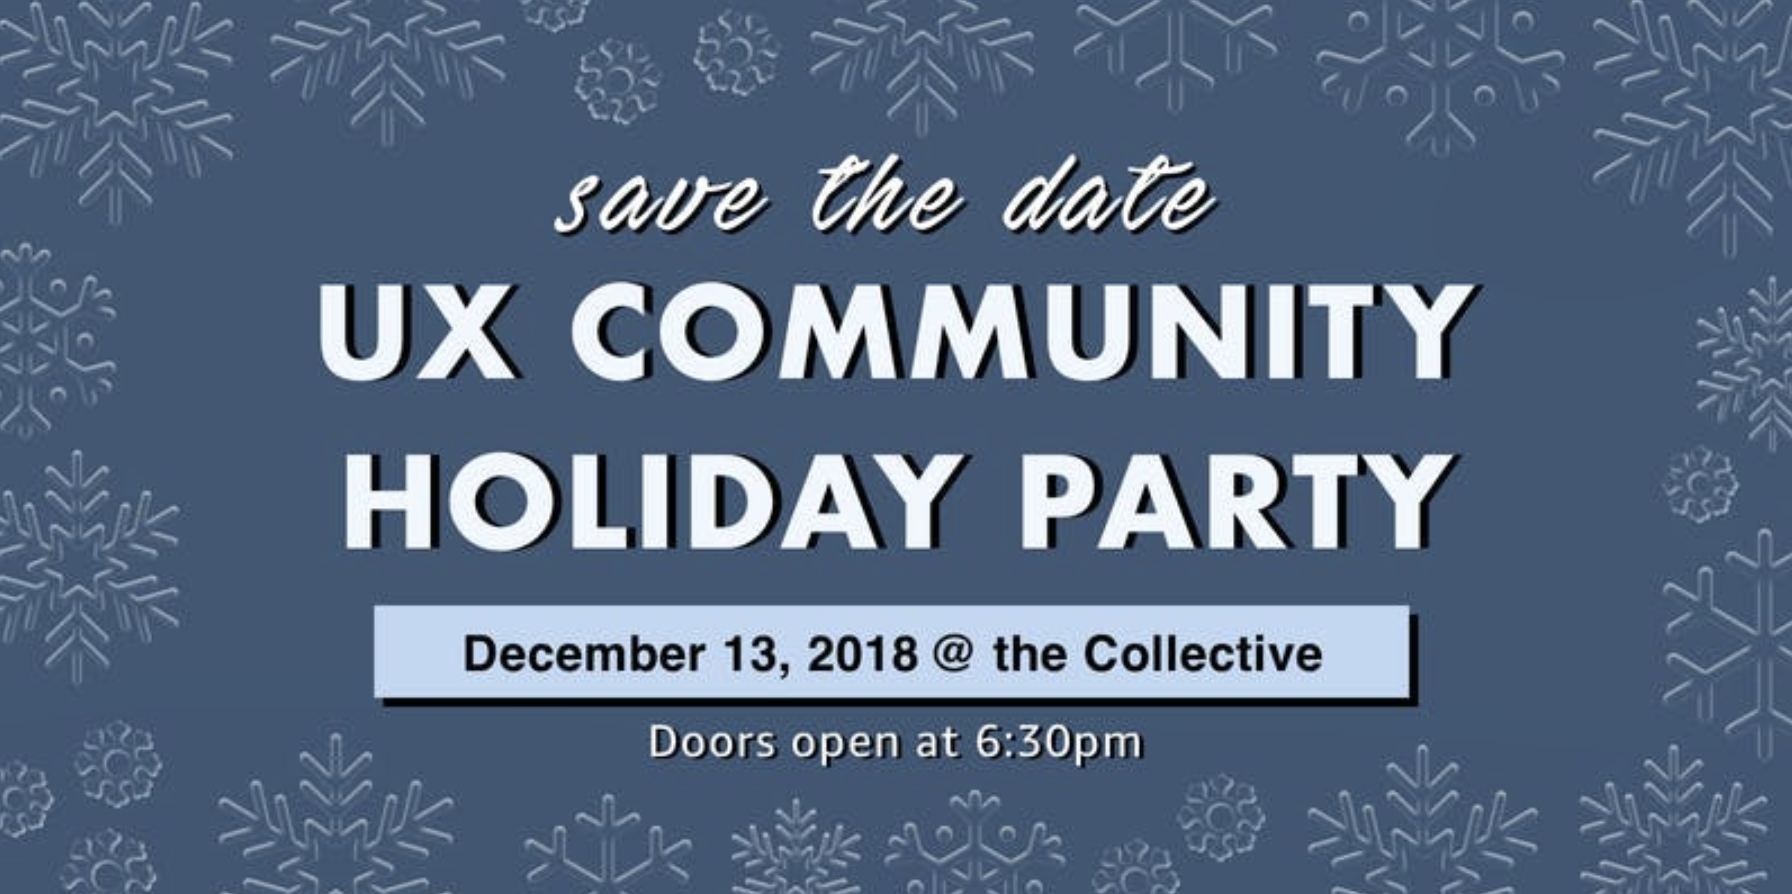 UX Community Holiday Party